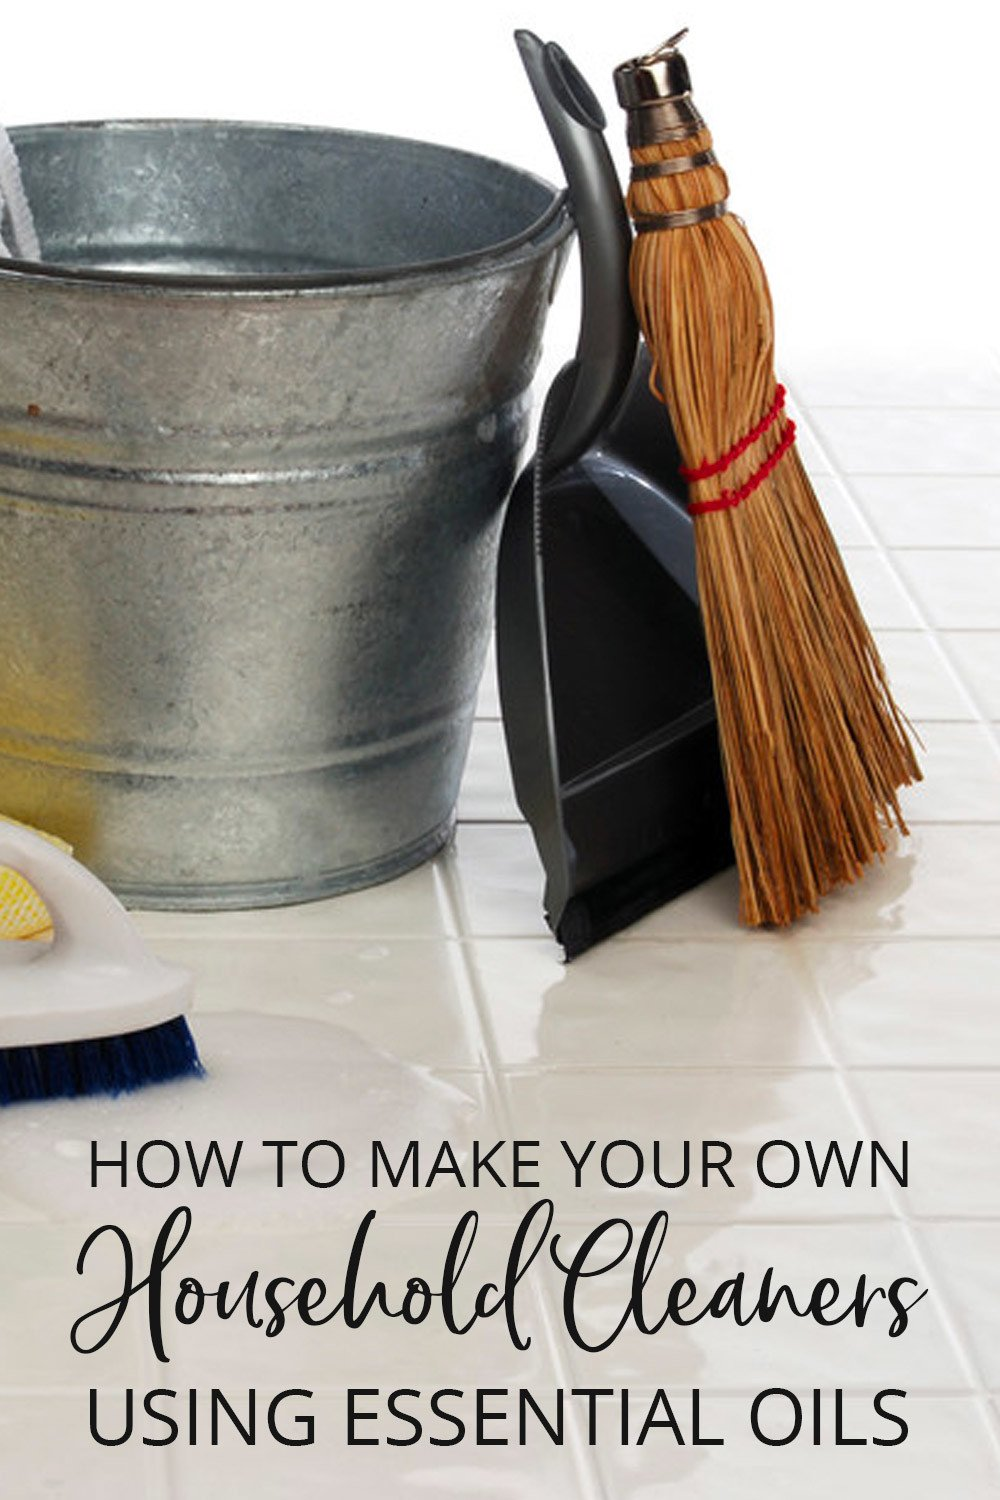 How to make your own household cleaners using essential oils